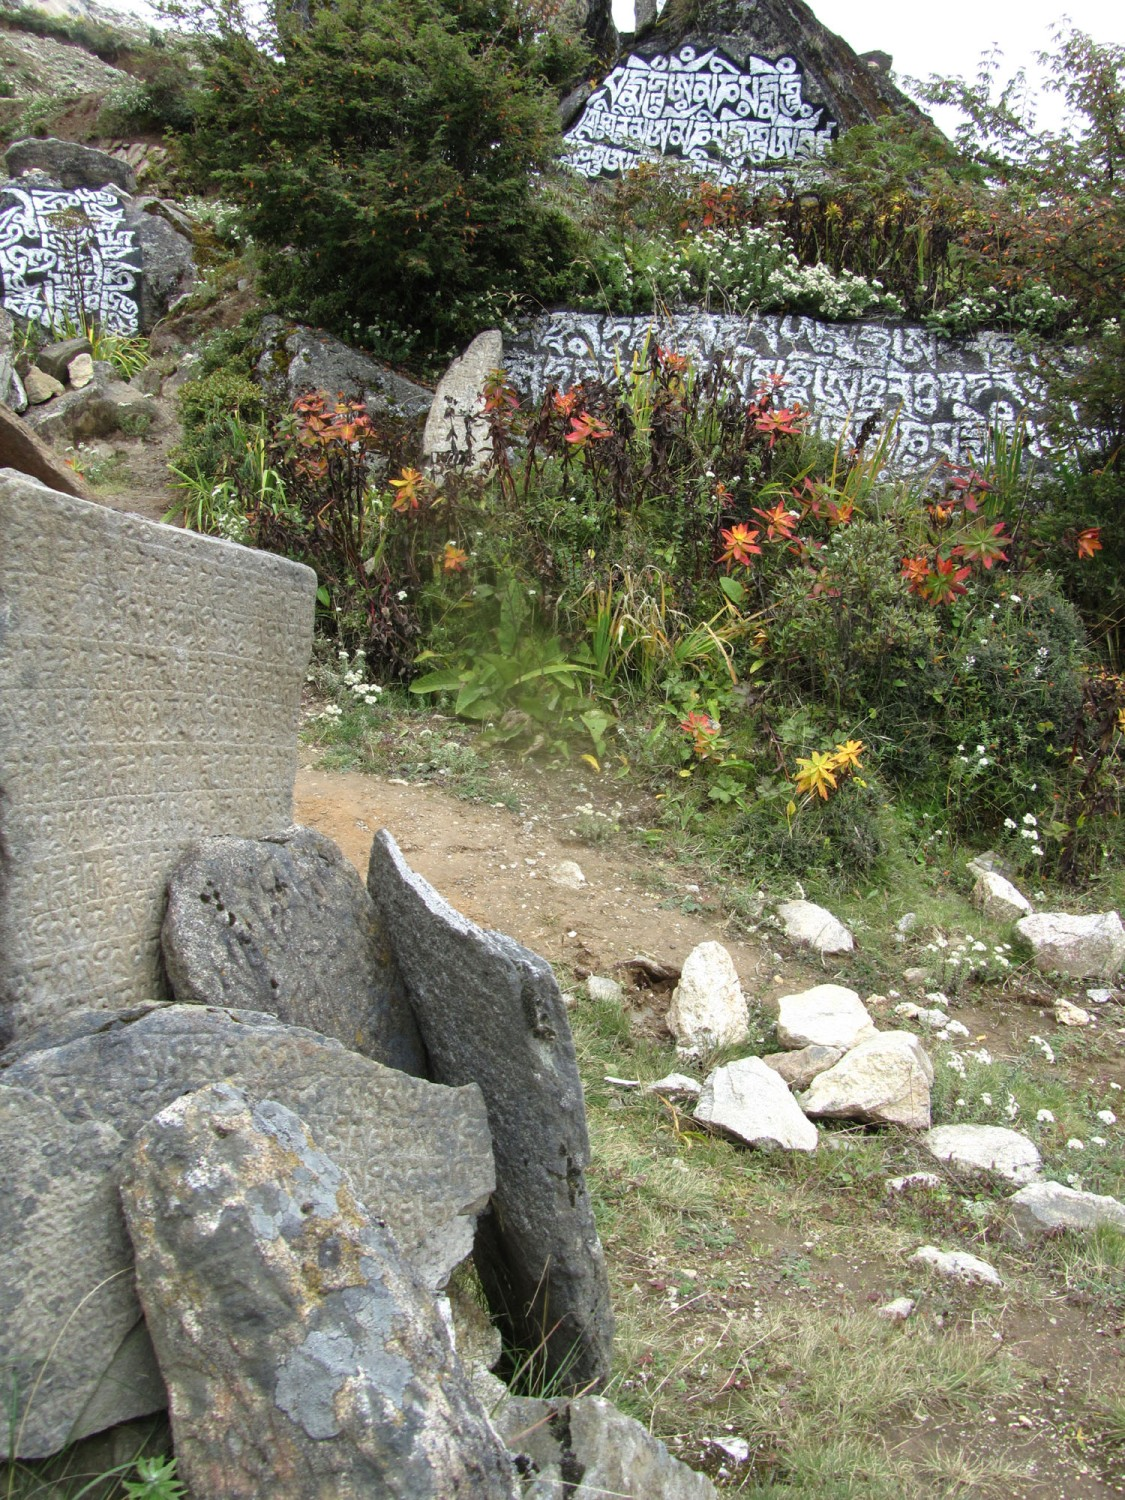 Nepal-Everest-Region-Trek-Day-08-Mani-Stone-Garden